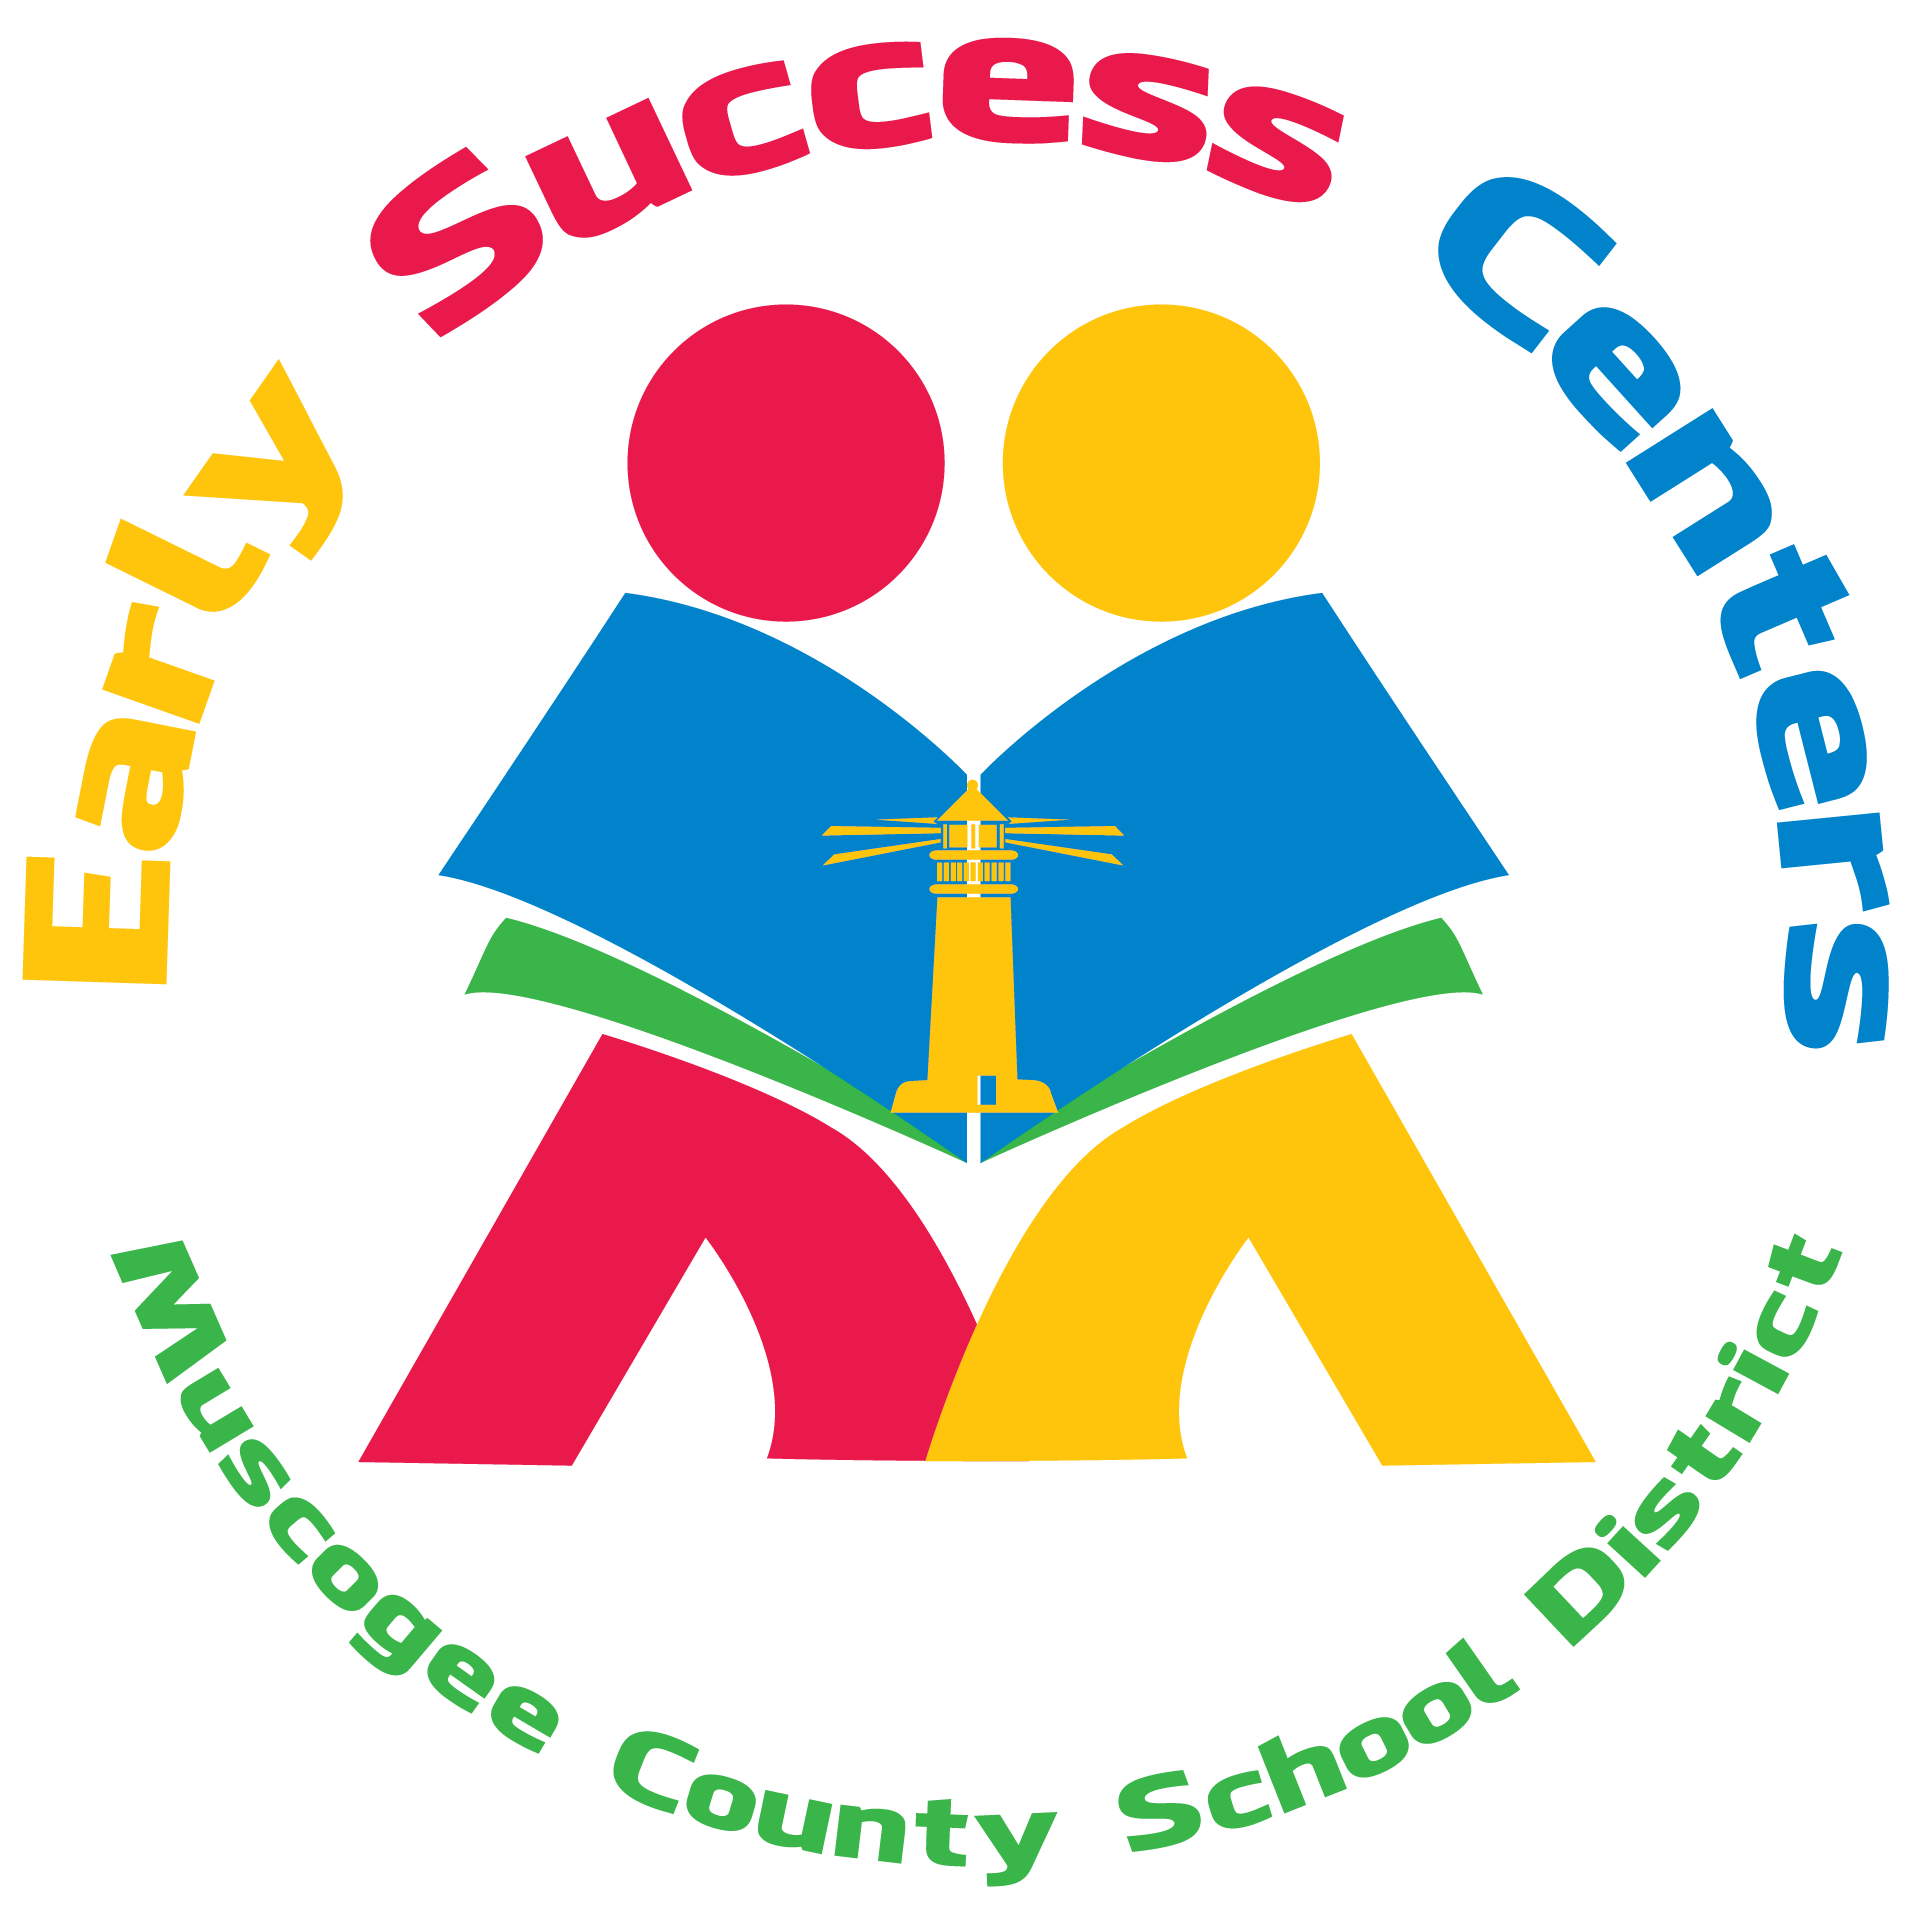 Early Success Centers